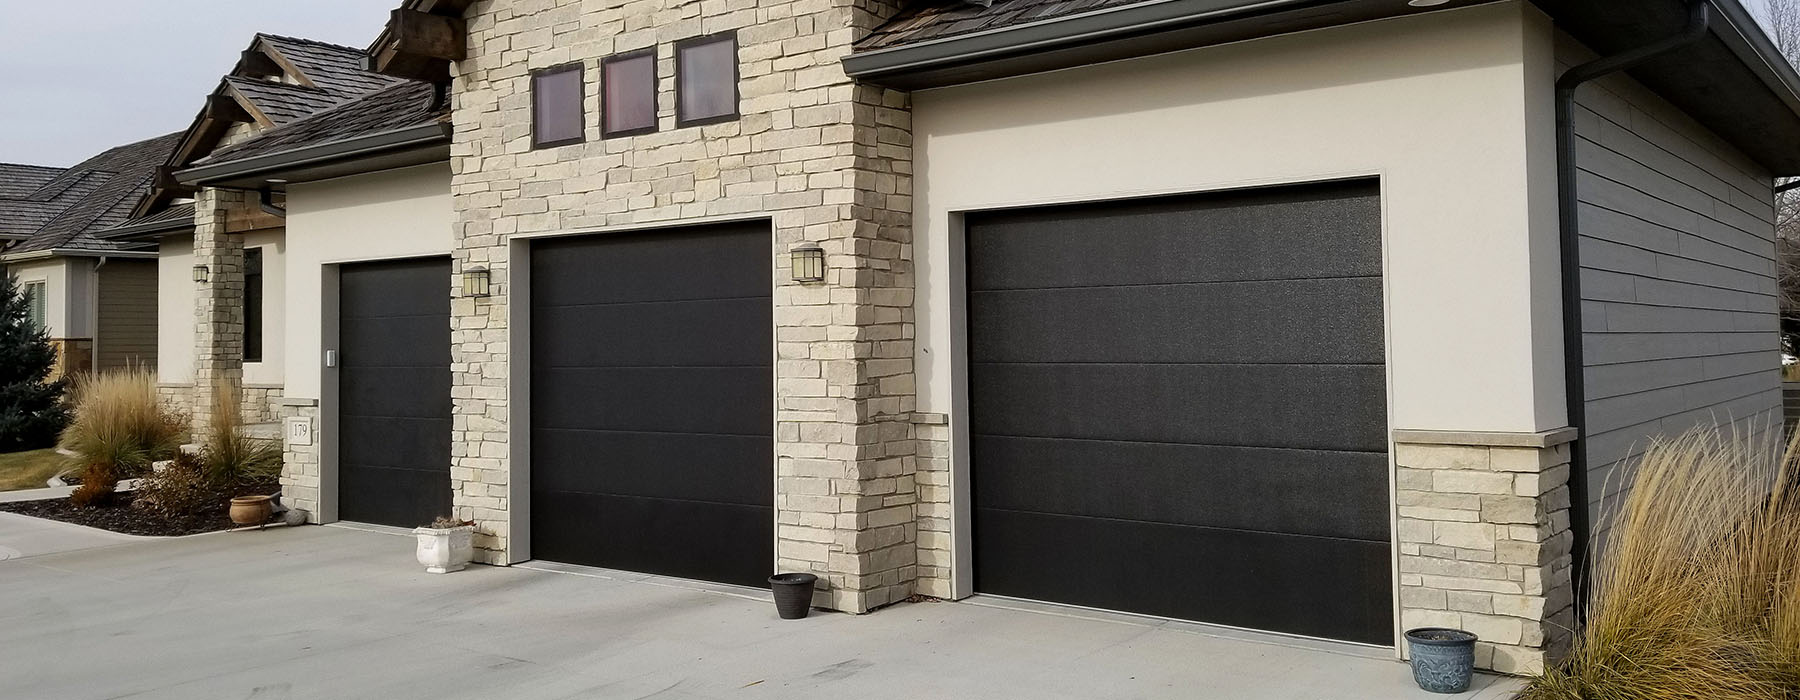 Beautiful ... Overhead Door Overhead Door Sioux City Pictures : Contact ...